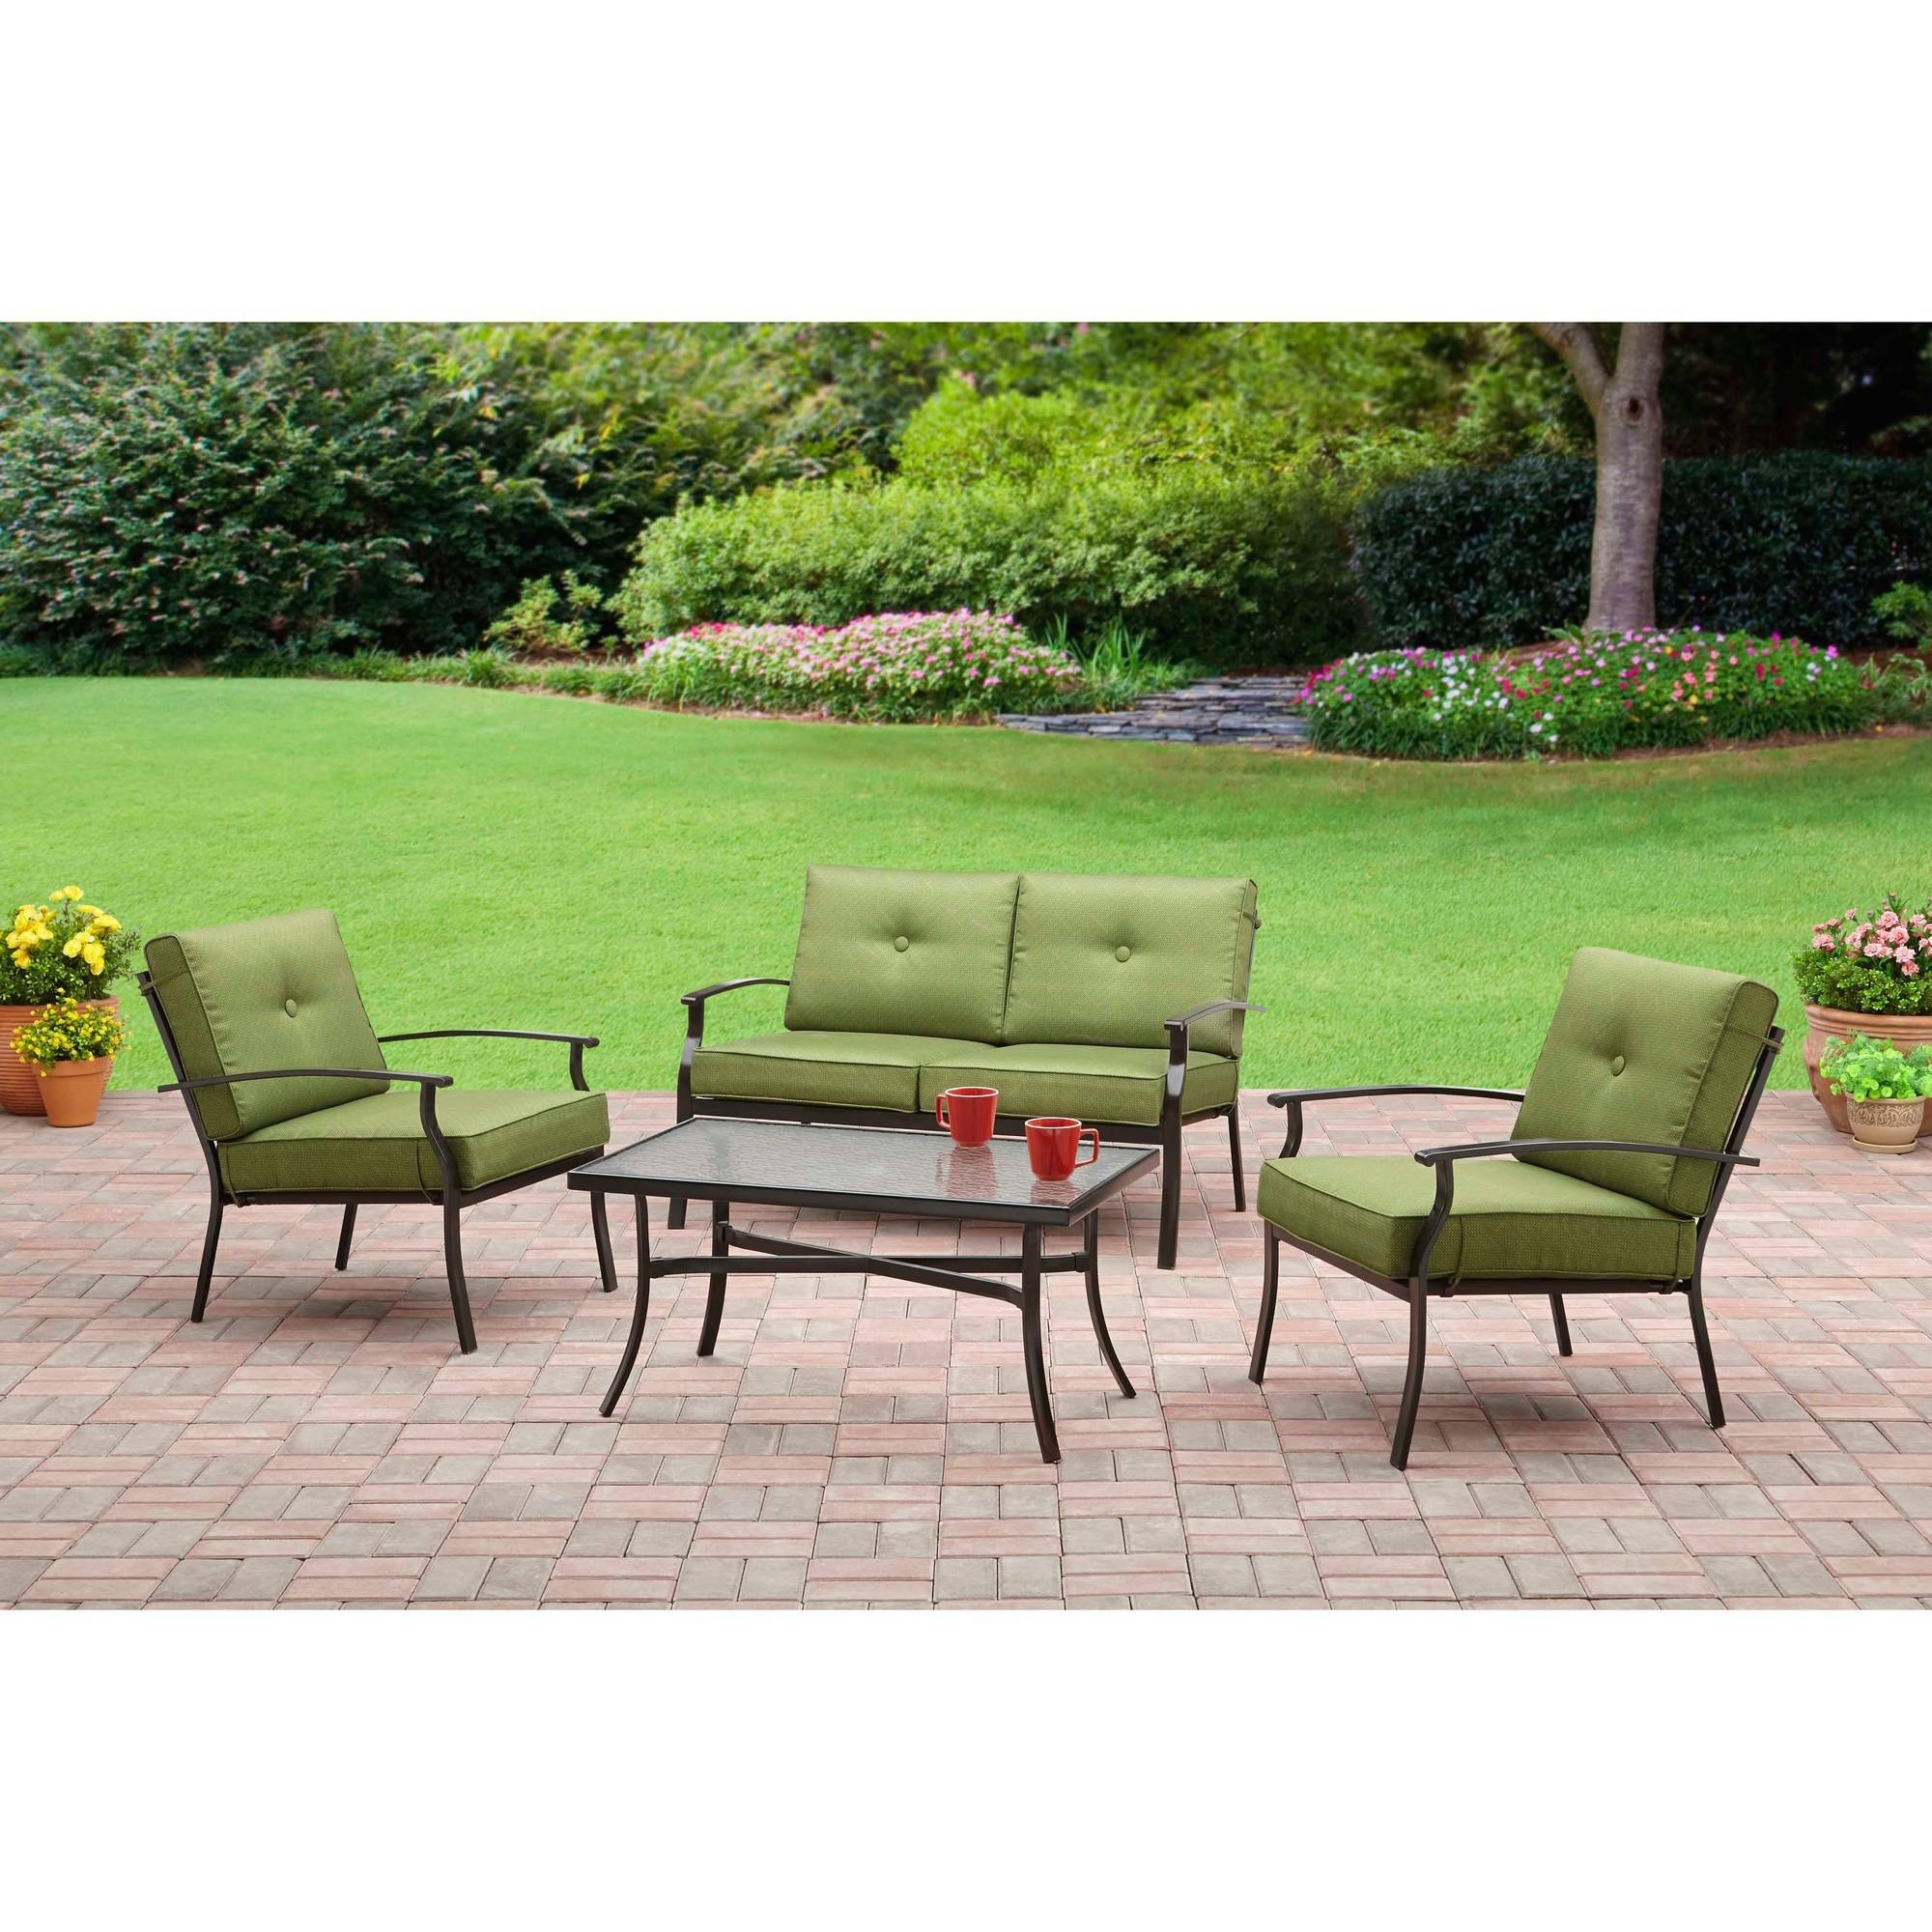 Well Liked 4 Piece Patio Conversation Sets Pertaining To Mainstays Bryant Place 4 Piece Conversation Set, Green – Walmart (View 8 of 20)